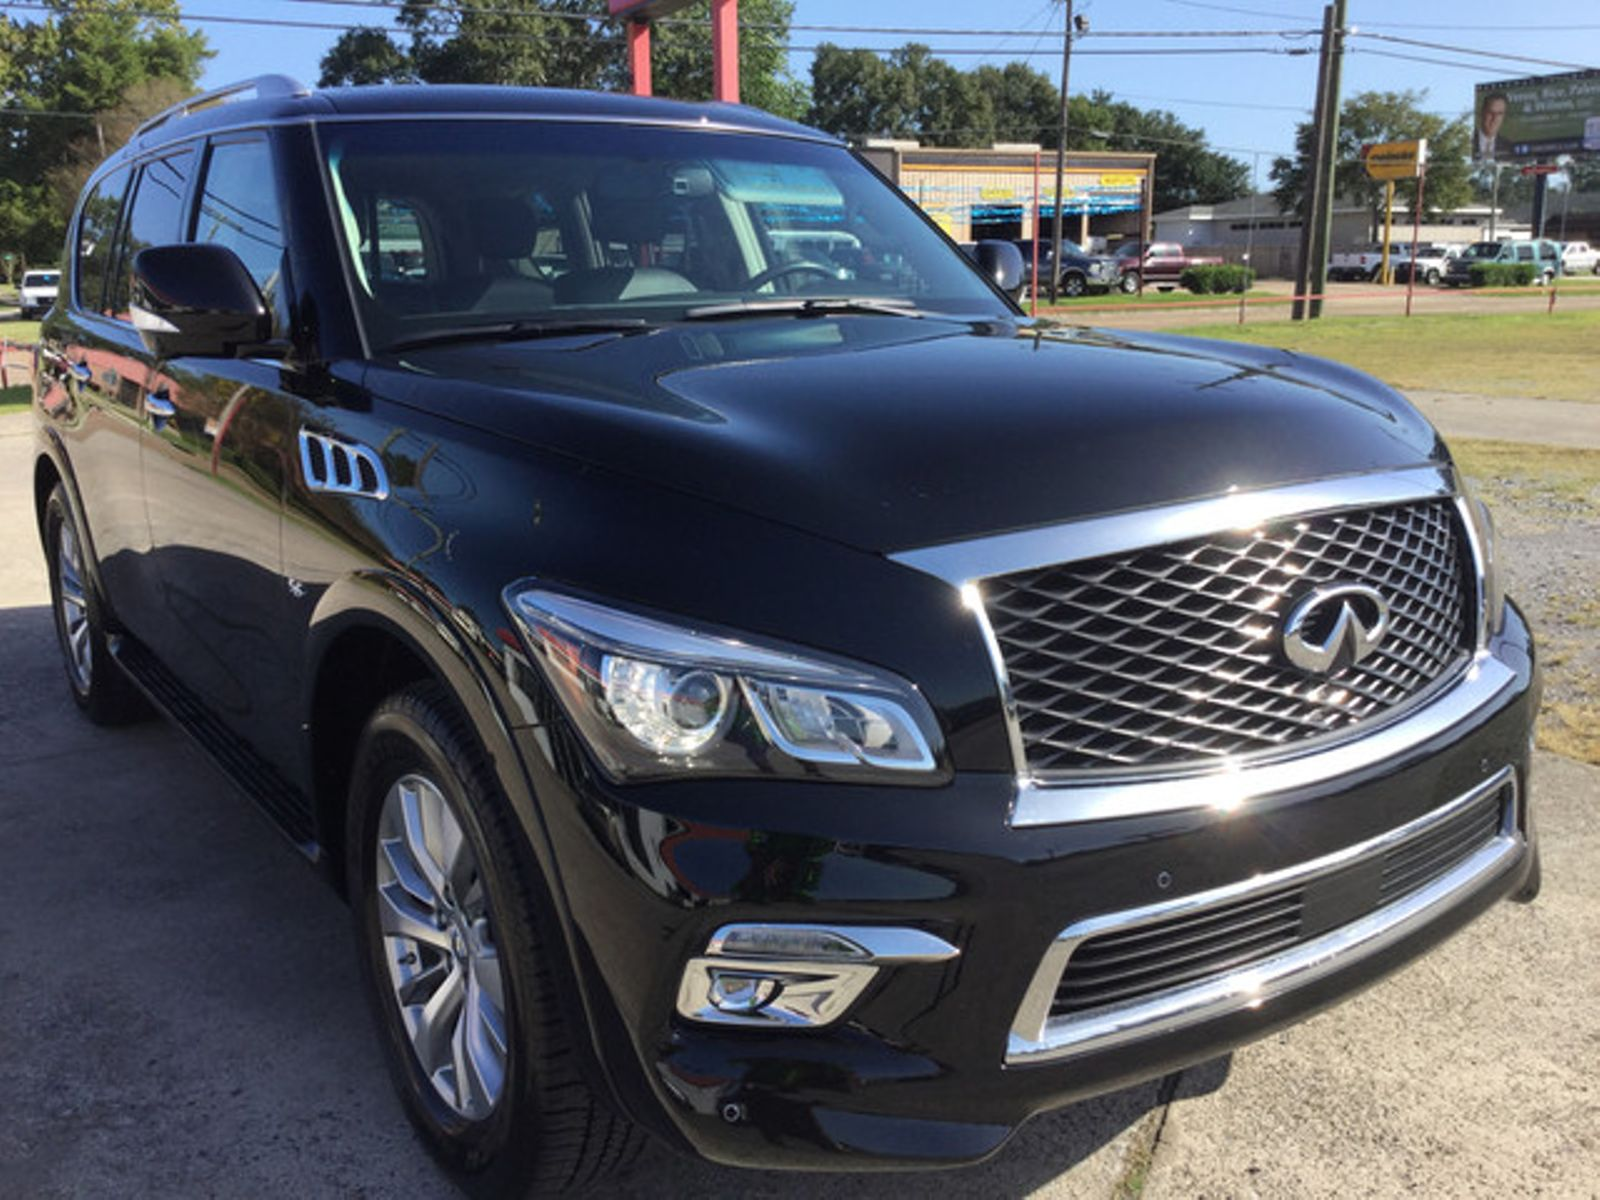 Infiniti Qx80 Lake Charles >> Infiniti Qx80 Lake Charles 2019 2020 Car Release And Reviews